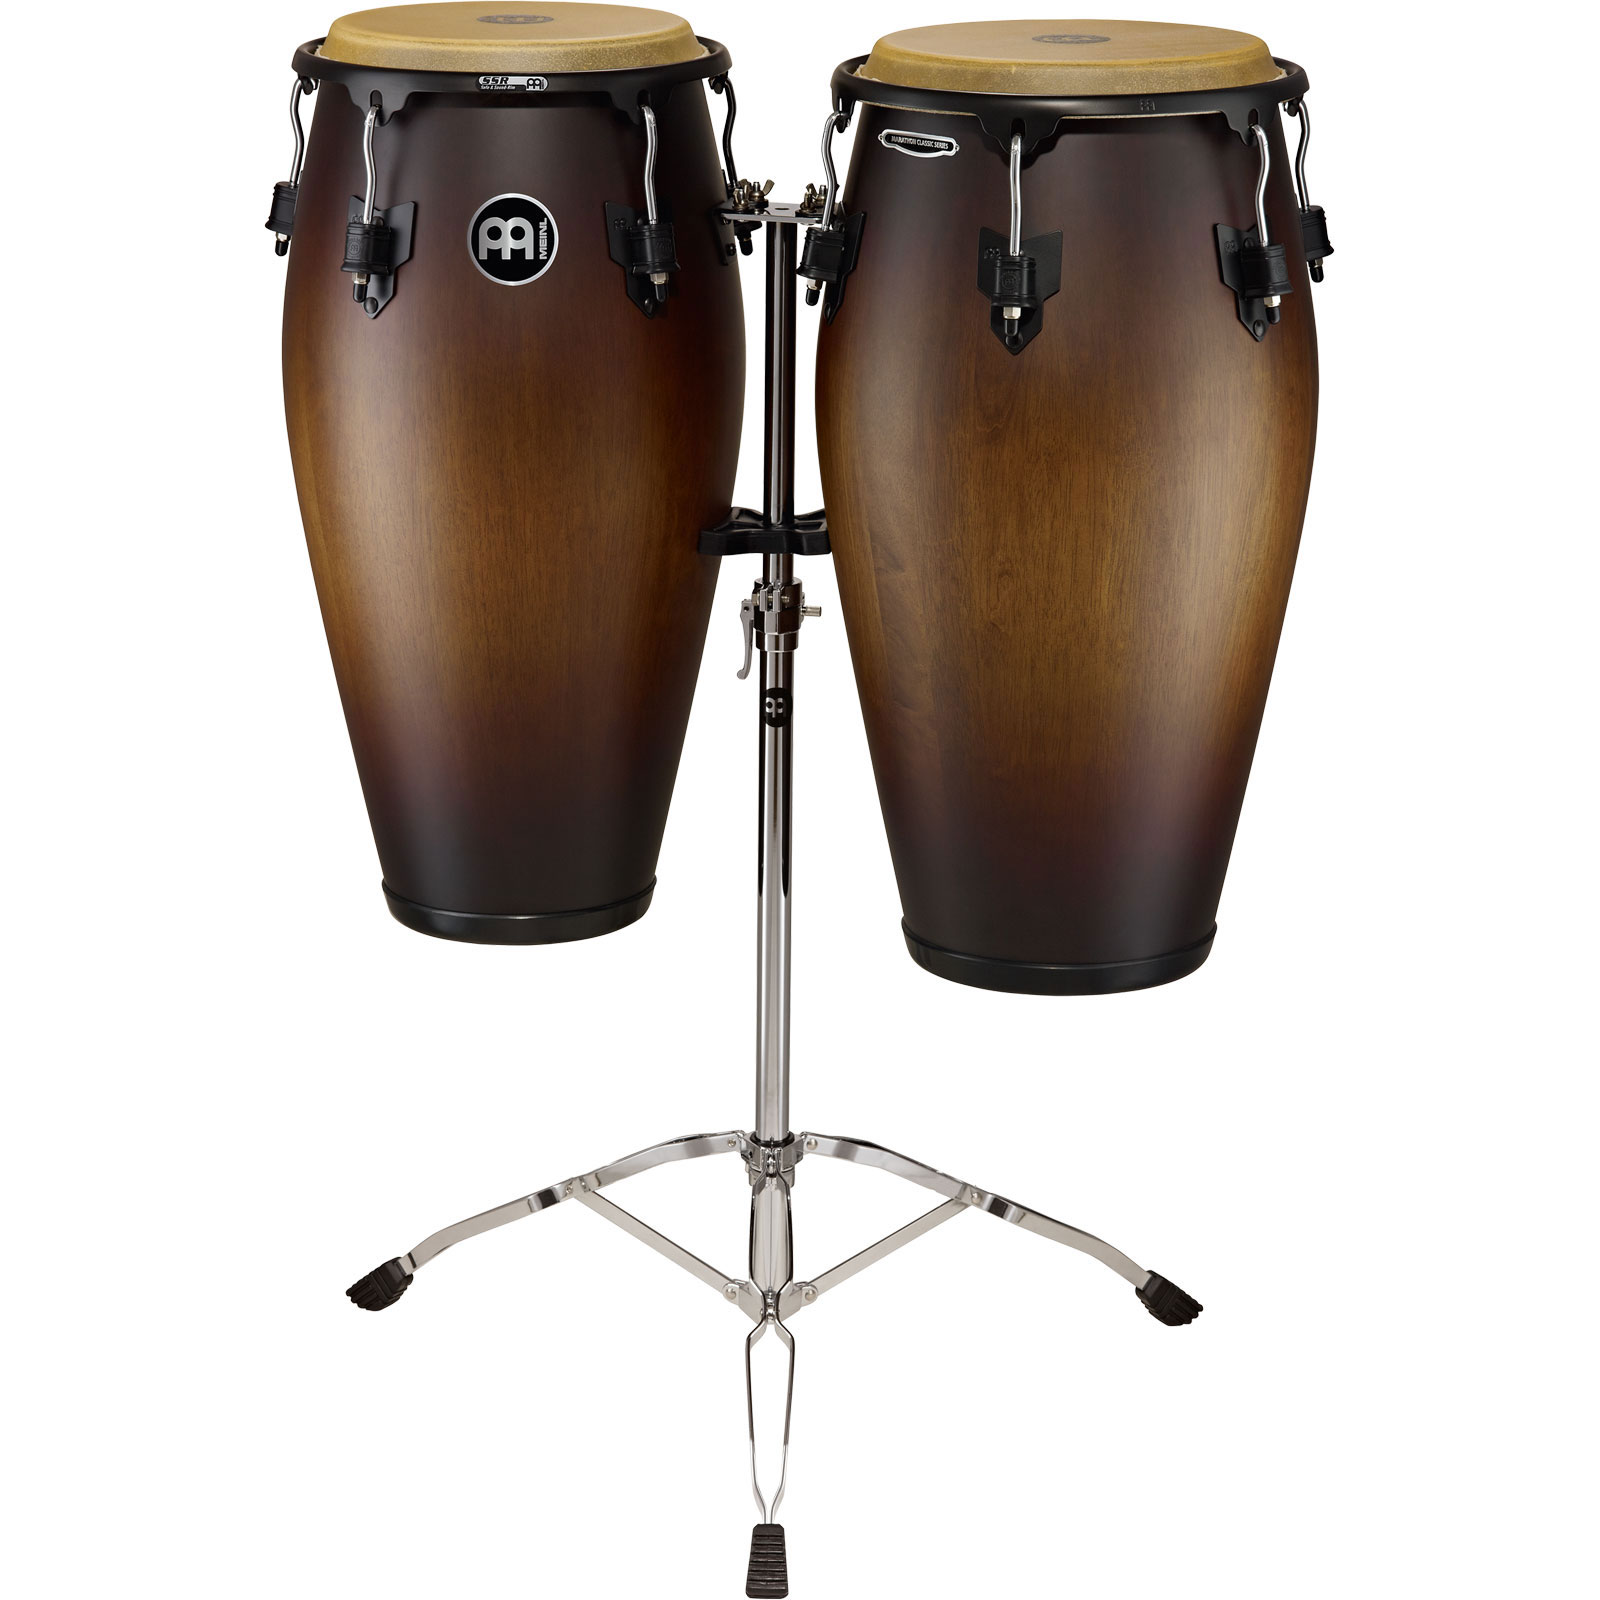 "Meinl 11"" & 11.75"" Marathon Classic Series Congas in Antique Tobacco Burst with Stand"